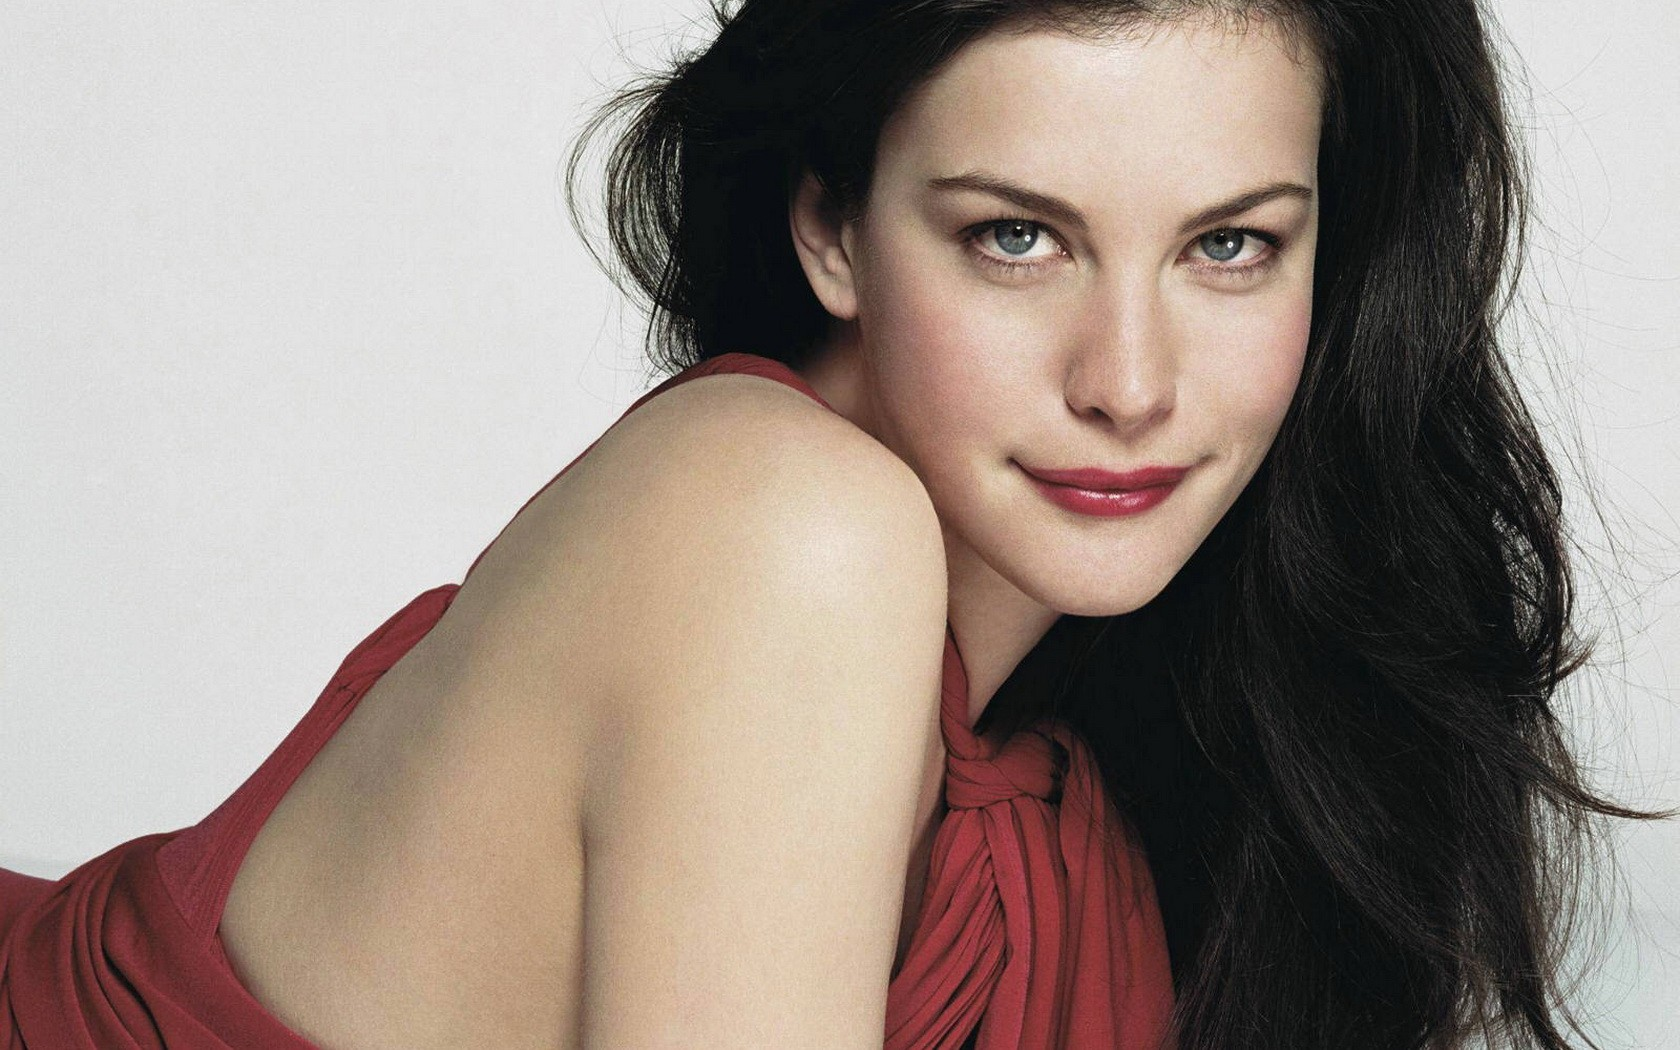 Natalie portman portrait pretty face hd wallpaper wallpaper list - Cute Liv Tyler Hot And Sexy Wallpapers All Hd Wallpapers